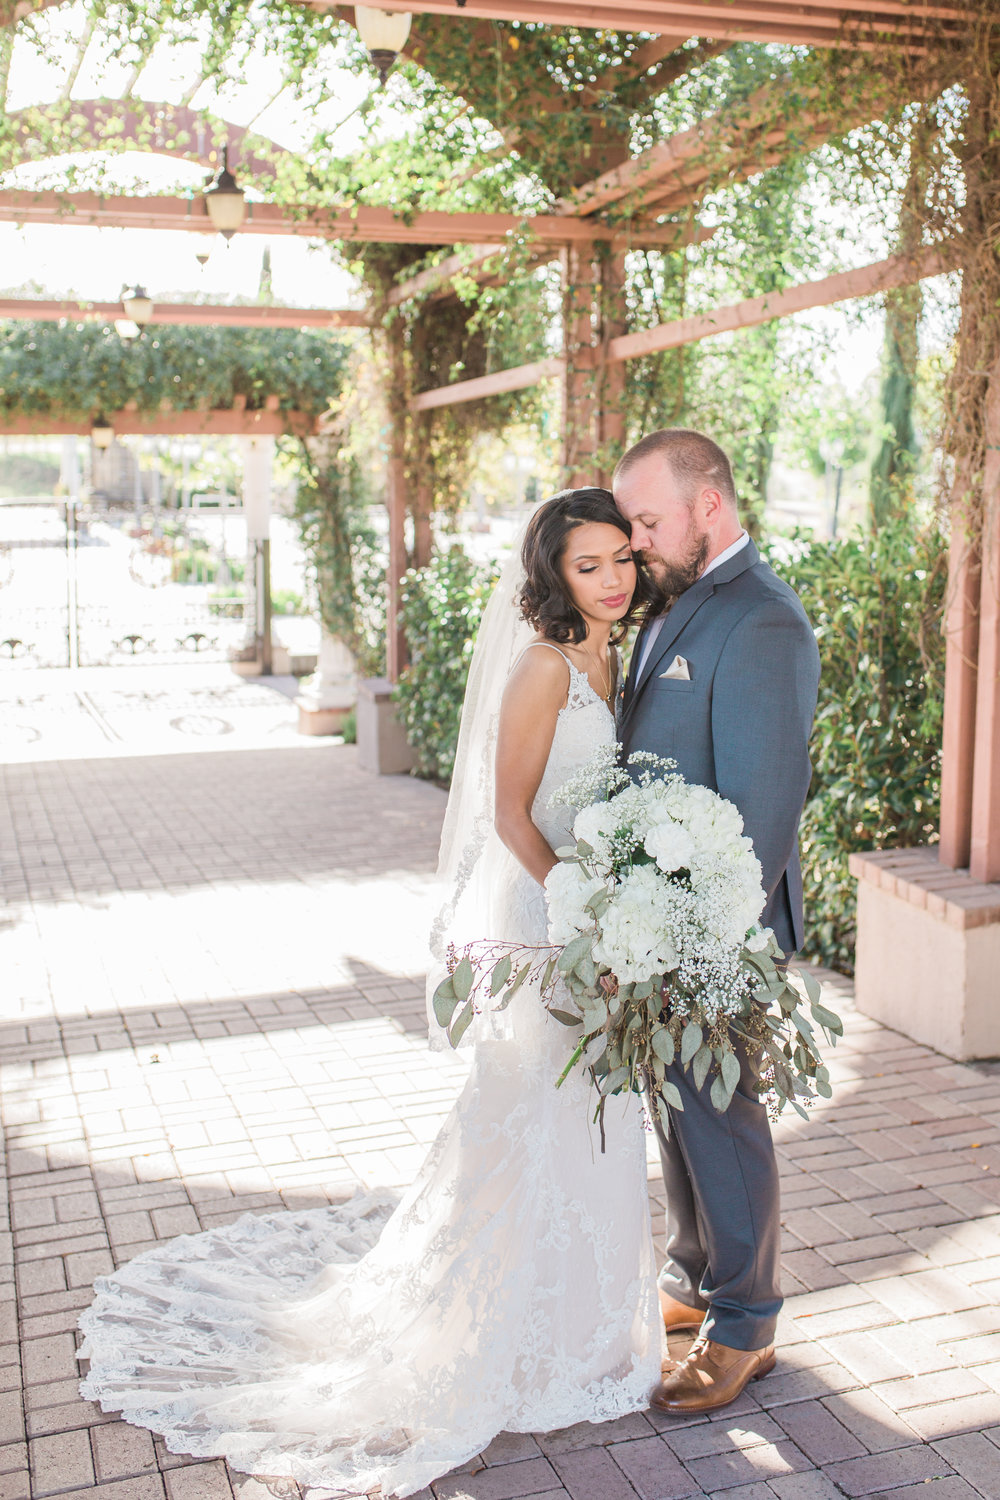 Heather Anderson Photography, Winery Weddings, Temecula Wedding Photographer, Wedding Photo Inspiration